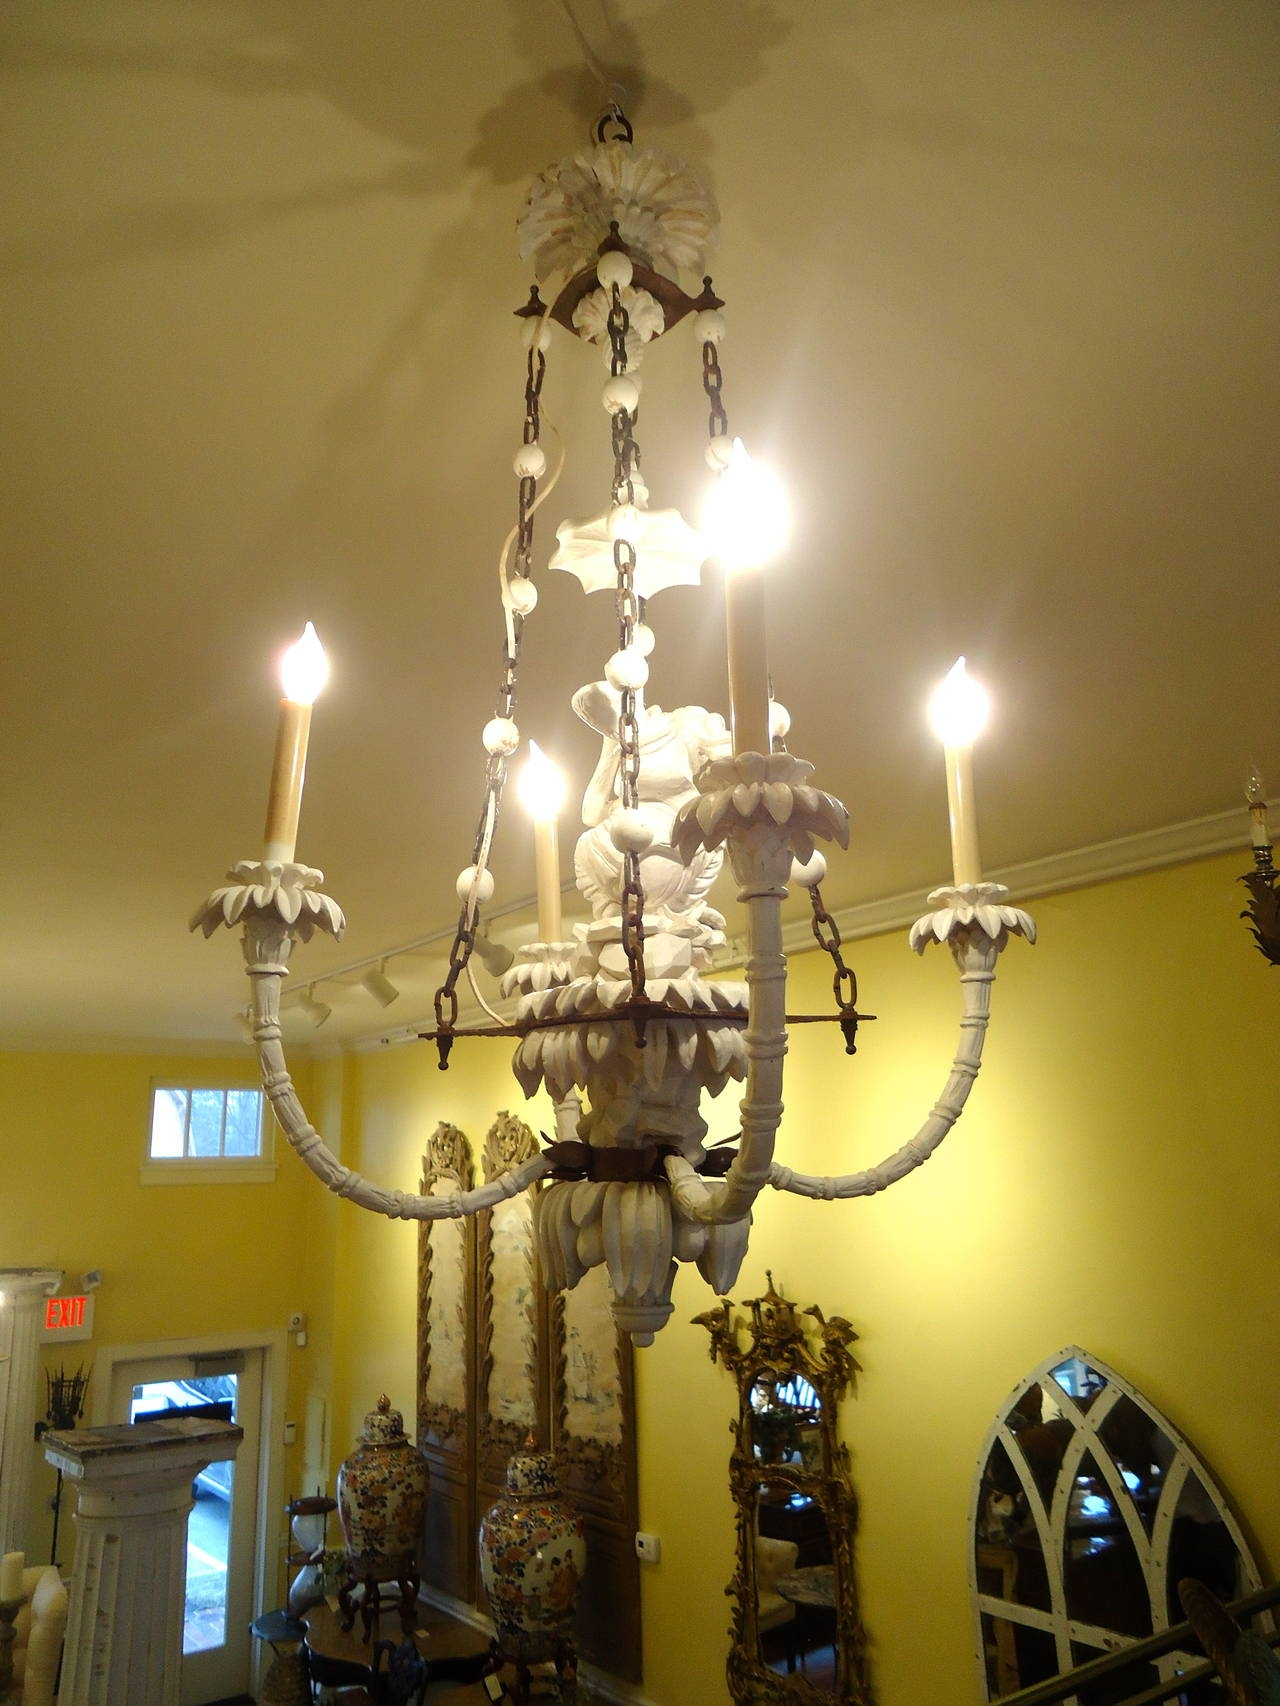 Super Chic Carved Wood Chinoiserie Style Monkey Chandelier At 1stdibs Inside Chinoiserie Chandeliers (Image 22 of 25)